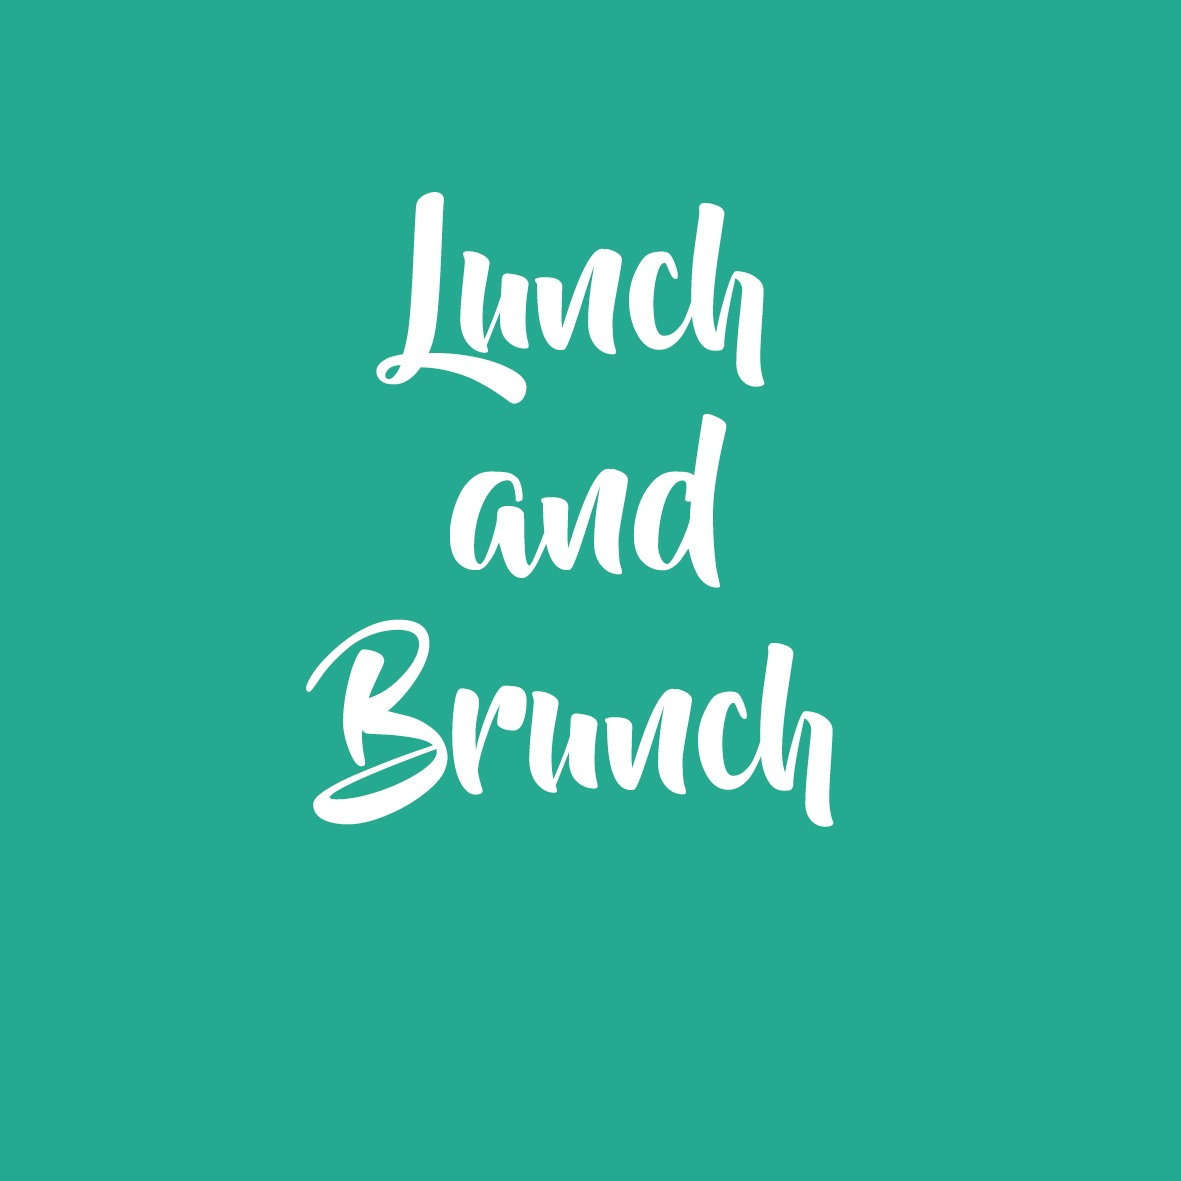 Lunch and Brunch